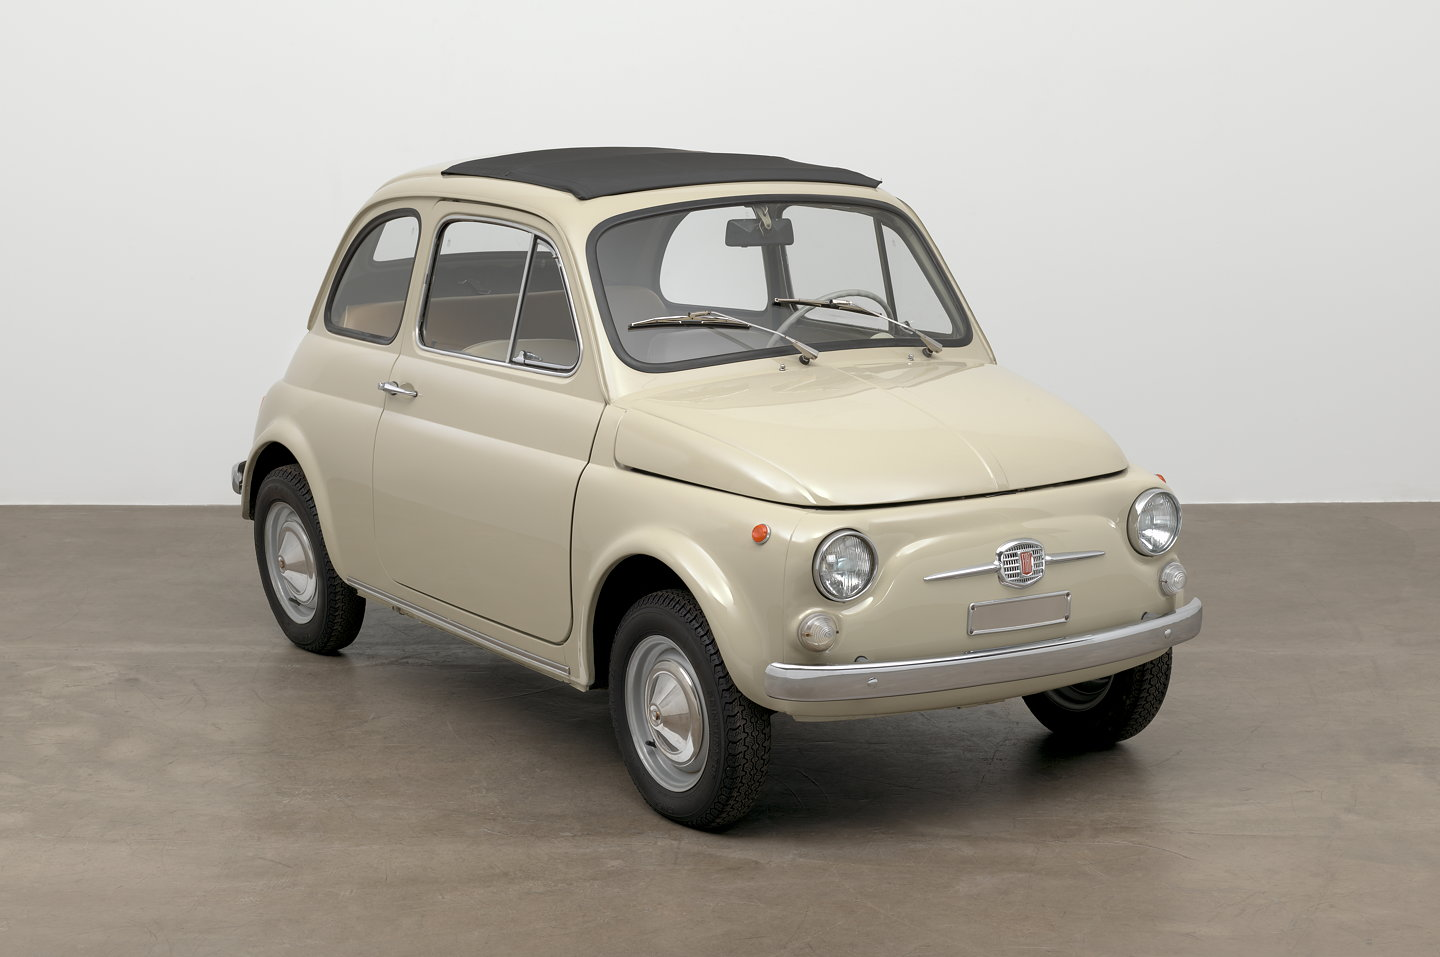 moma adds original condition 1968 fiat 500 to collection. Black Bedroom Furniture Sets. Home Design Ideas